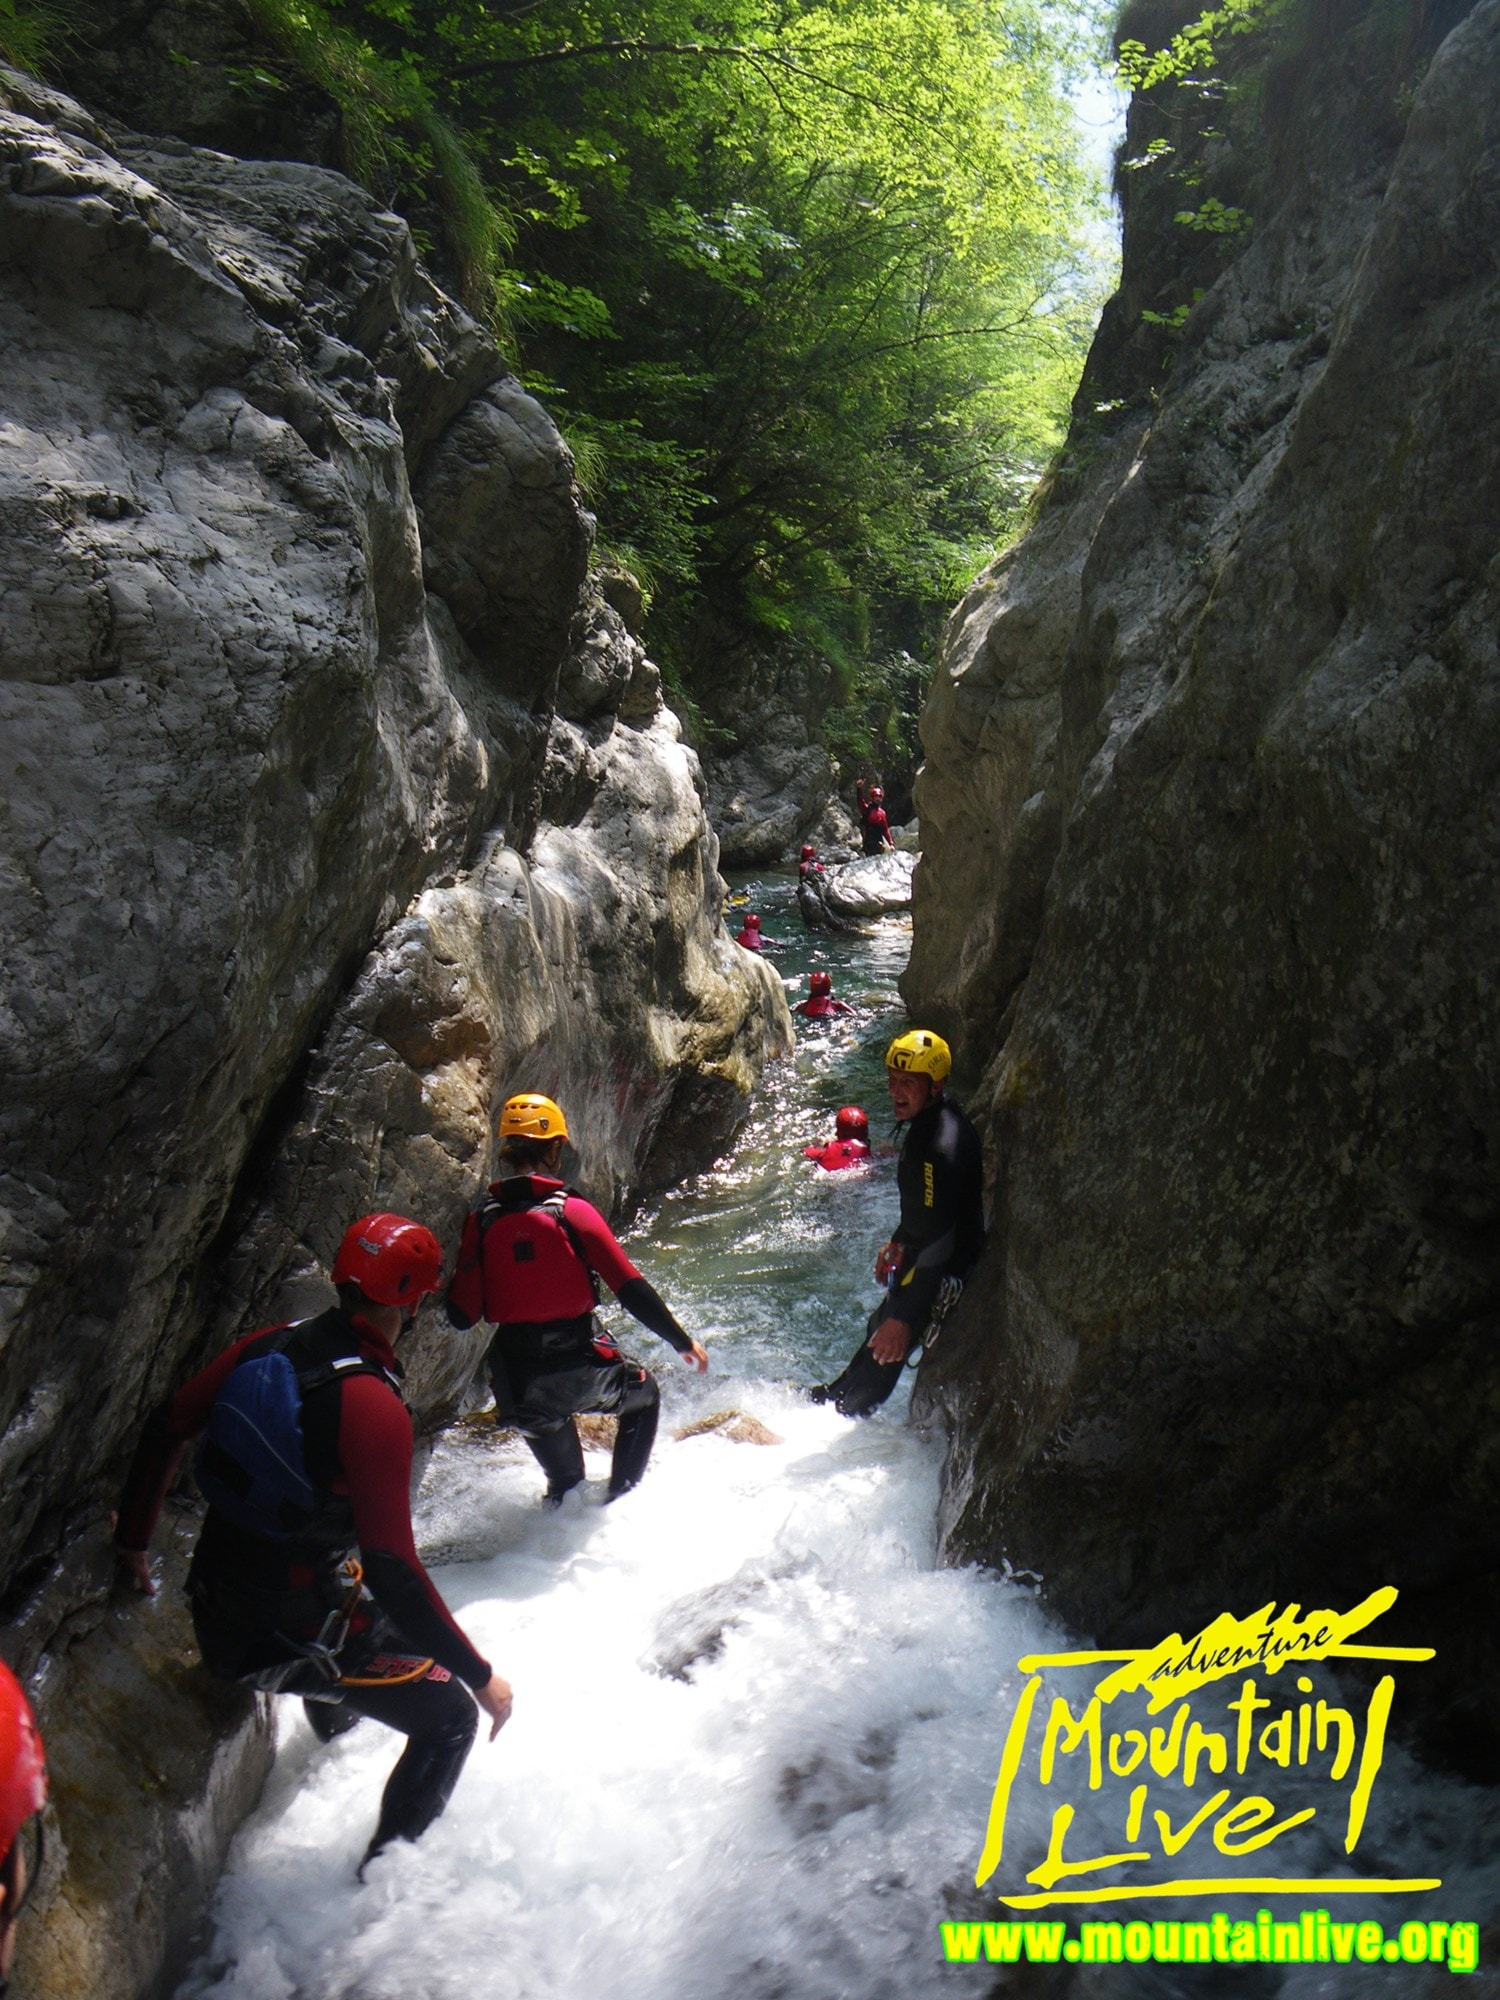 Canyoning in Trentino con Mountainlive. Tanto divertimento in sicurezza.